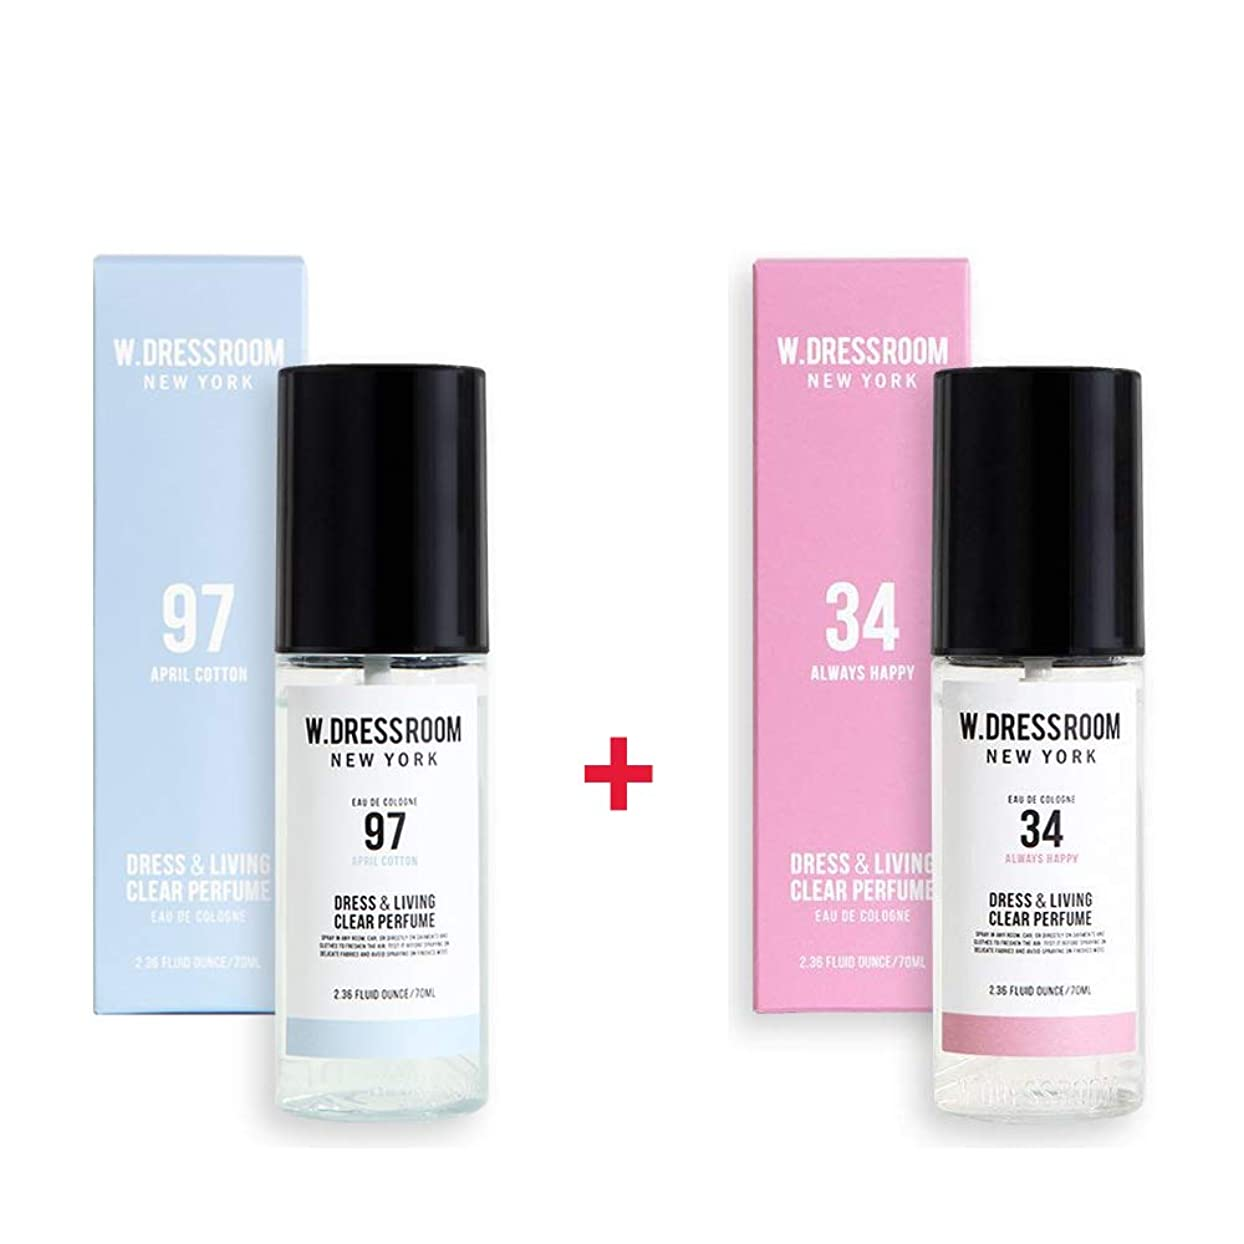 ステップところで芸術的W.DRESSROOM Dress & Living Clear Perfume 70ml (No 97 April Cotton)+(No 34 Always Happy)